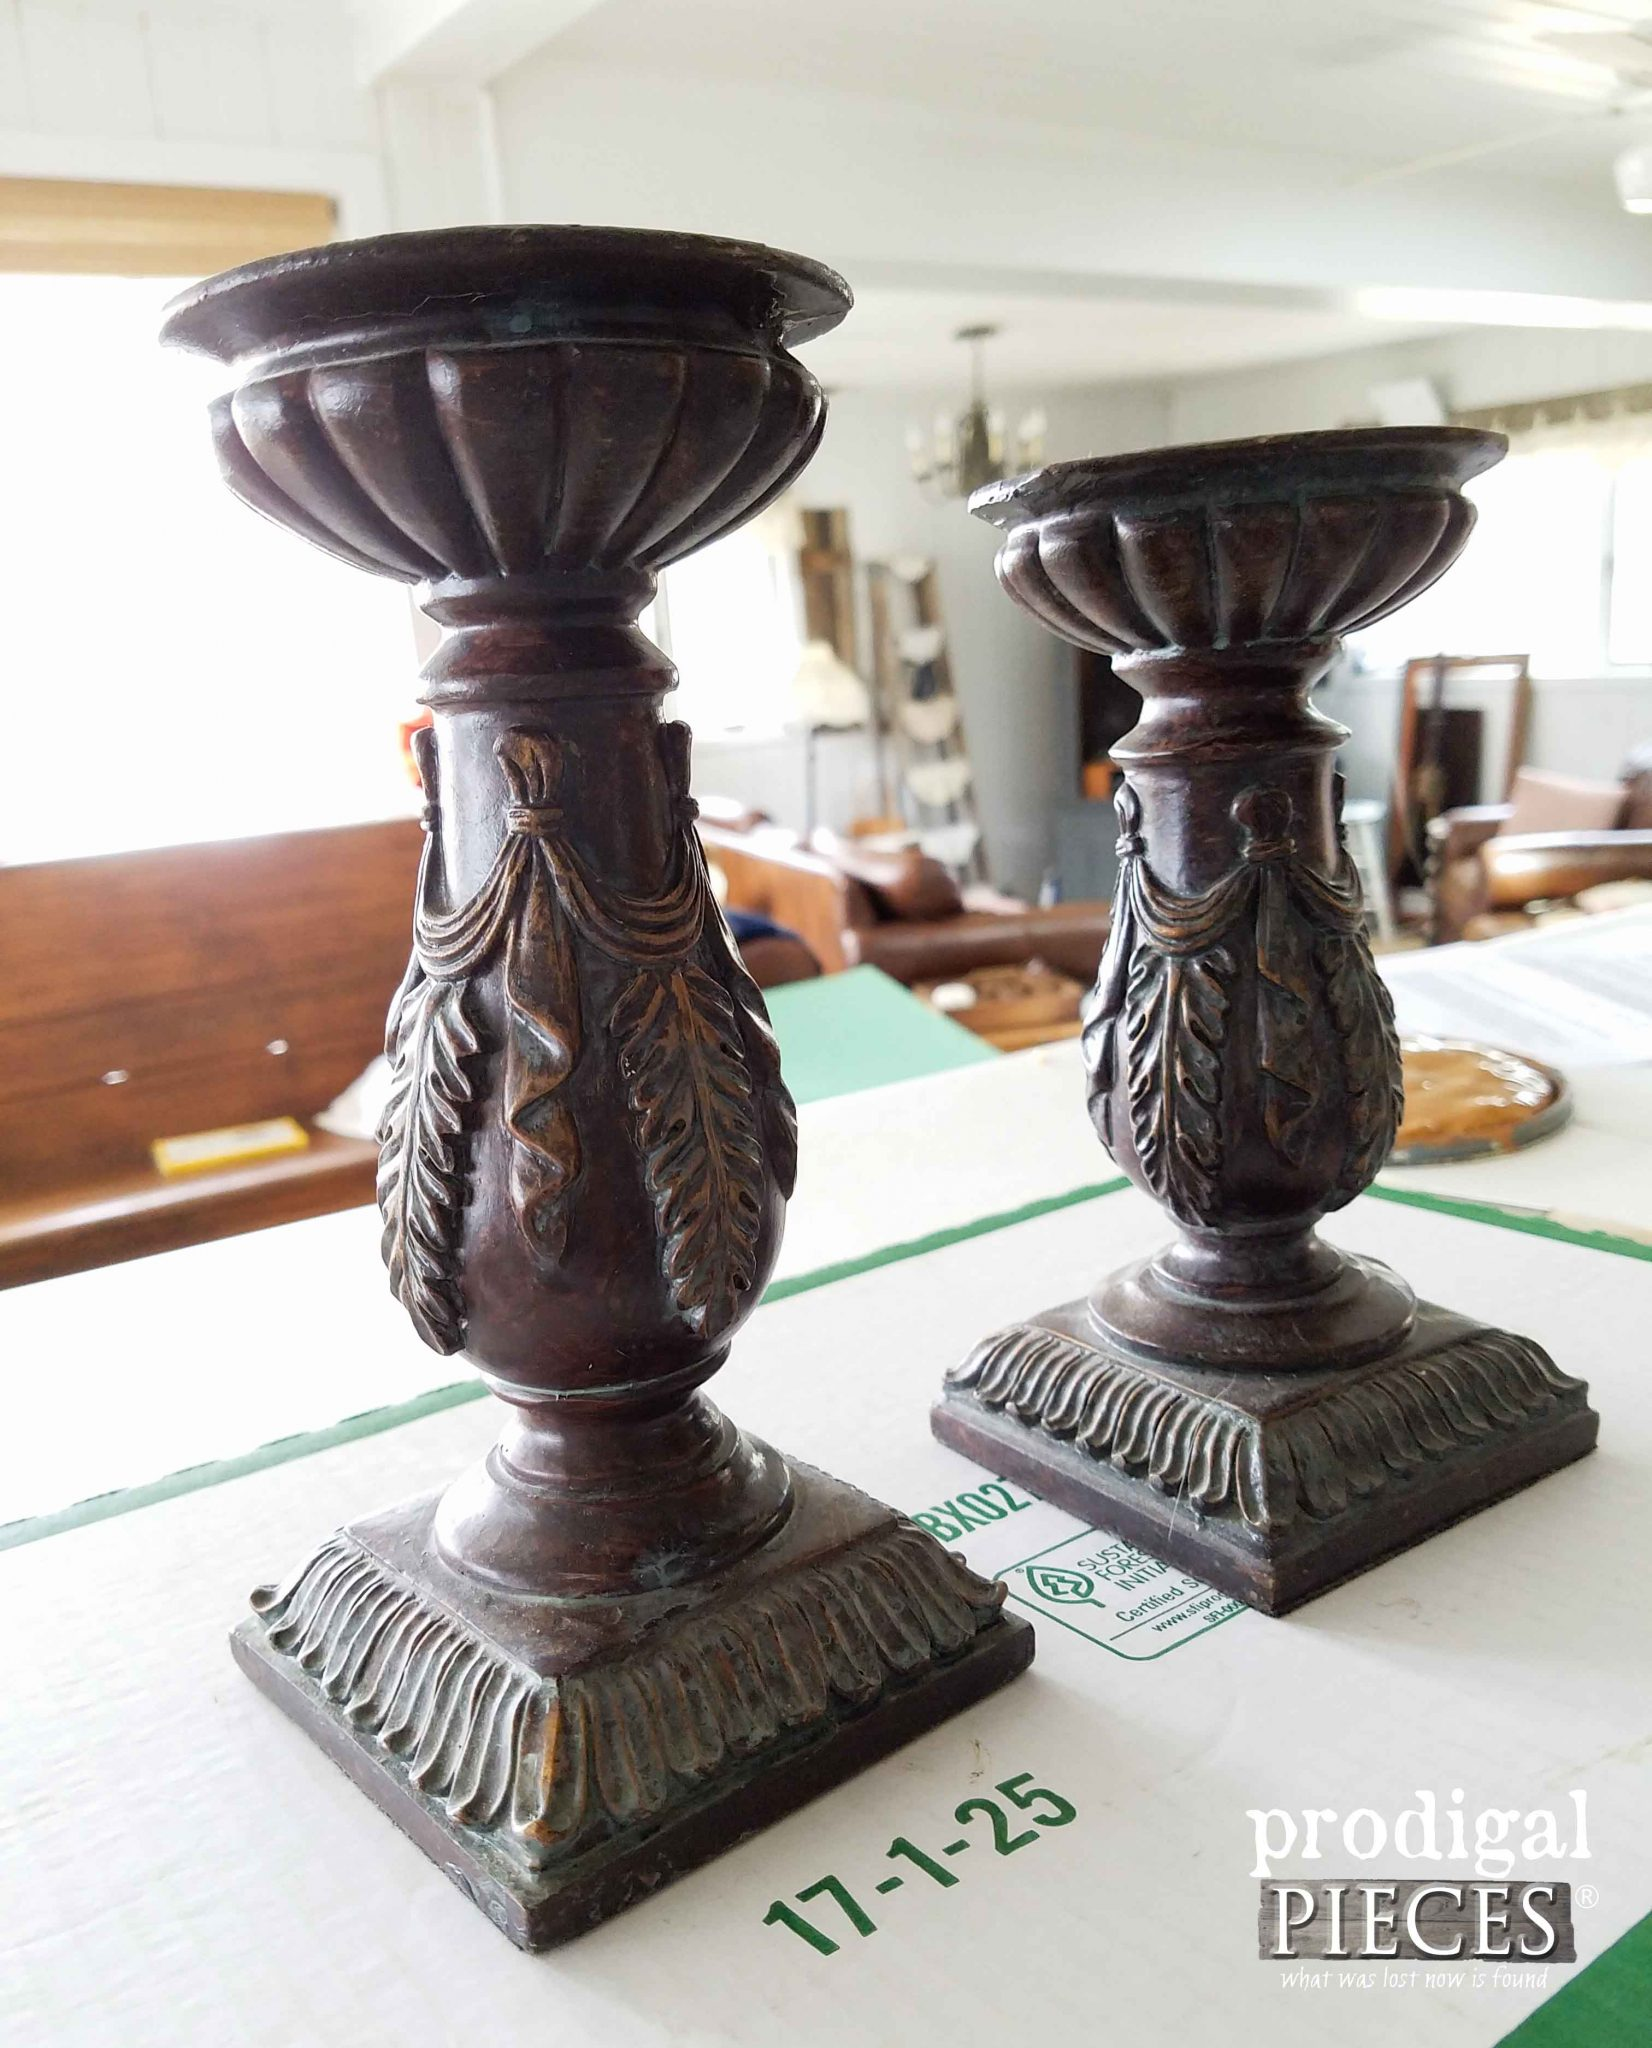 Thrifted Candlesticks Before Makeover | Prodigal Pieces | prodigalpieces.com